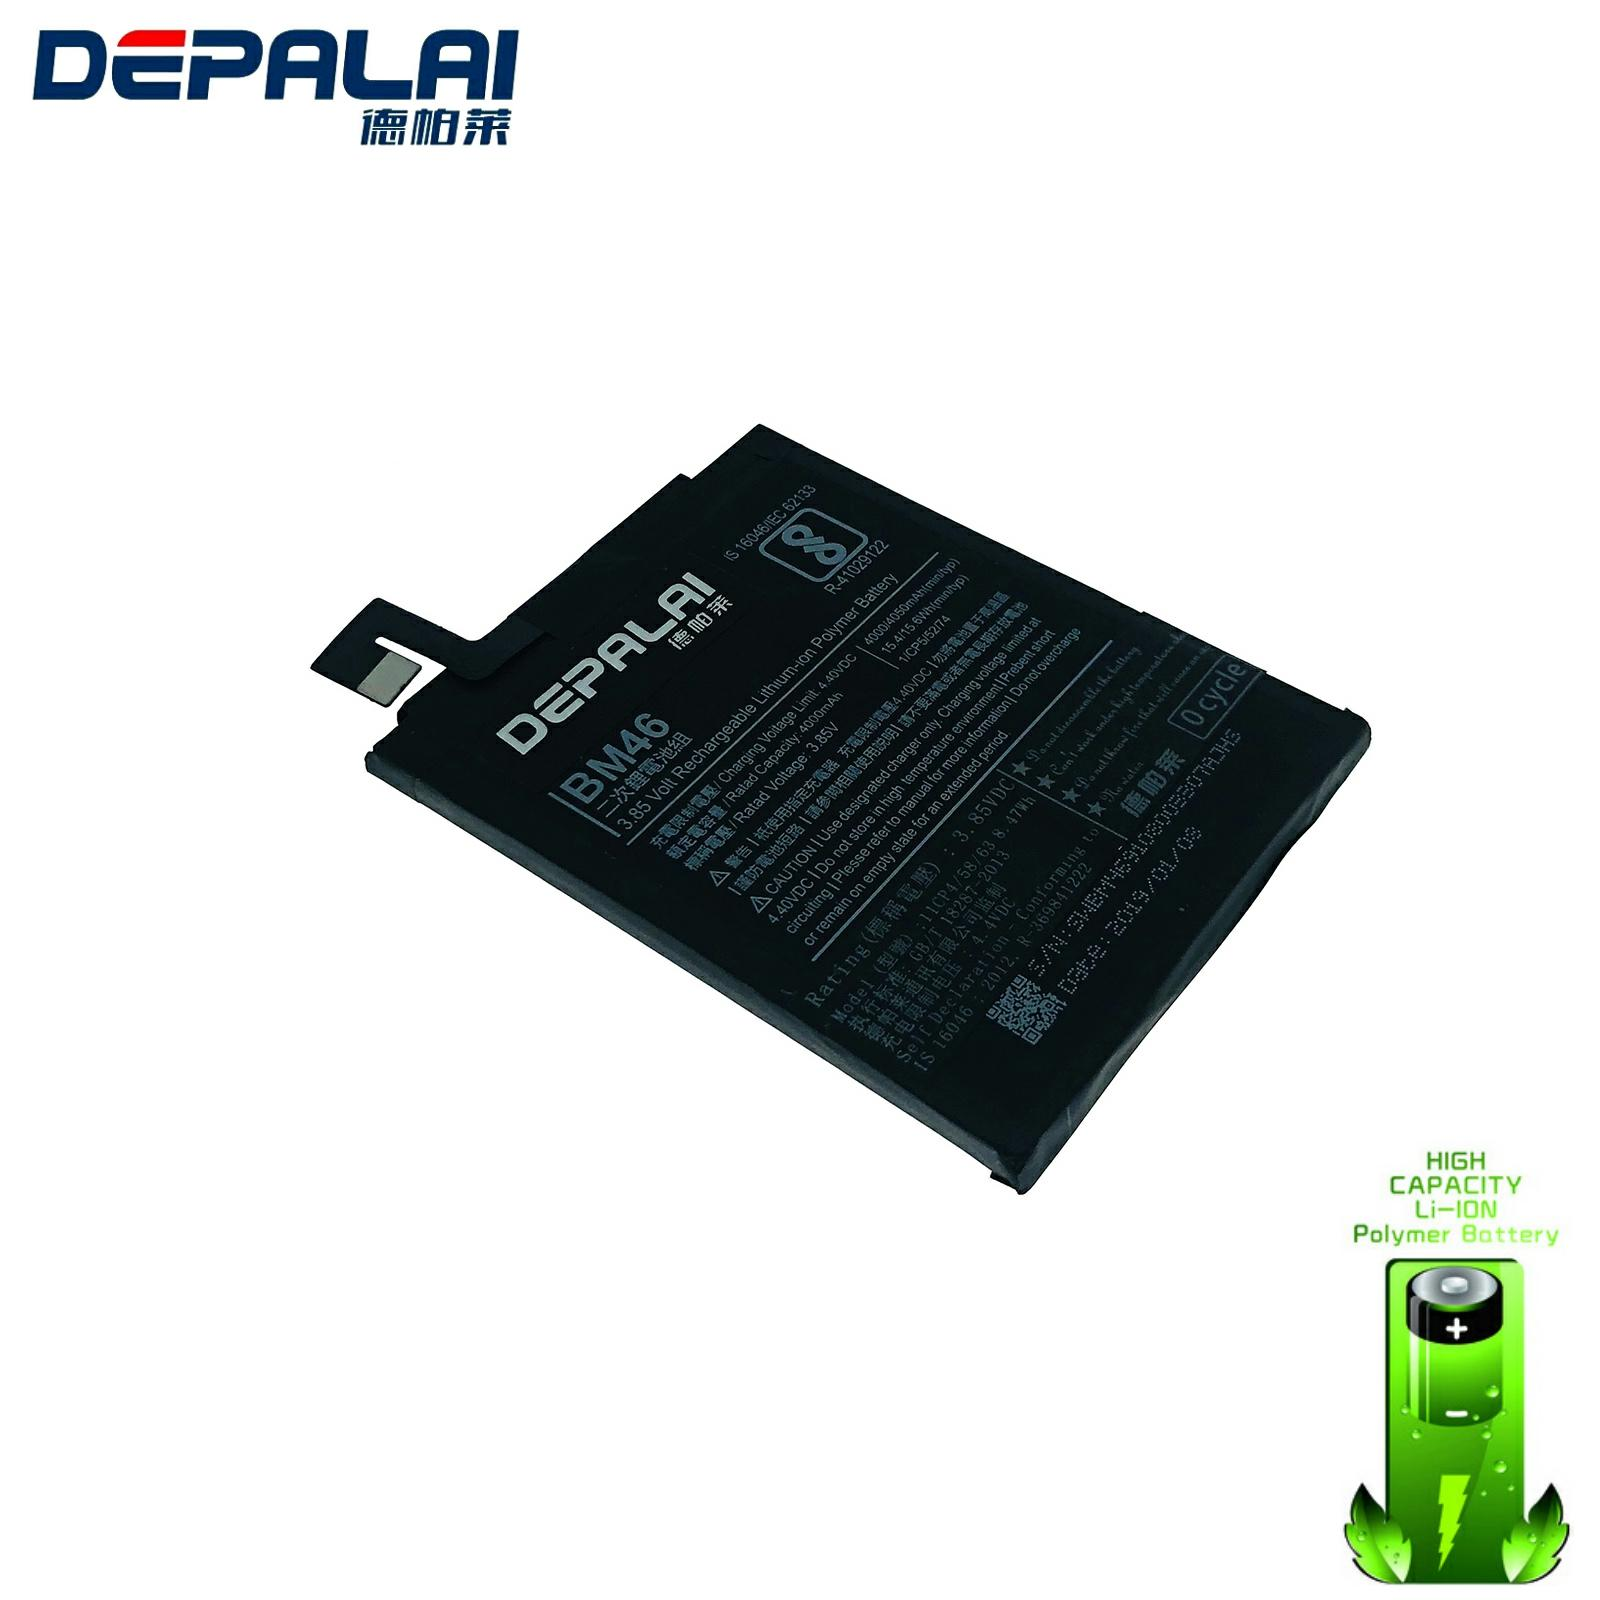 BM46 Battery Real 4000mAh For Xiaomi Redmi Note 3 Note 3 Pro Phone Replacement battery image